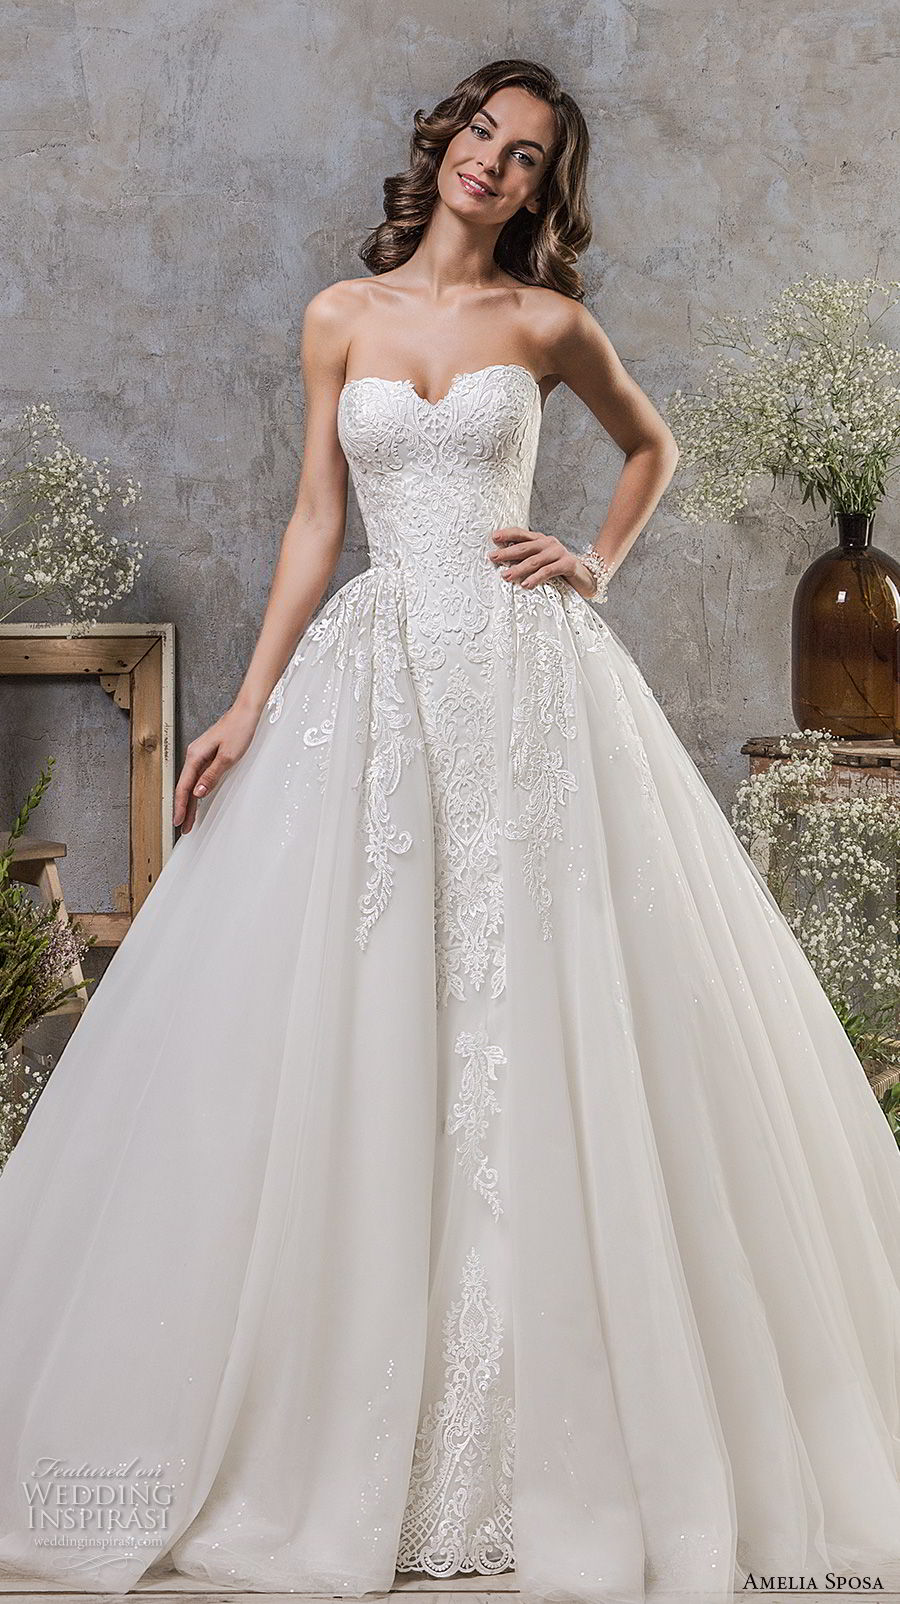 amelia sposa fall 2018 bridal strapless sweetheart neckline heavily embellished bodice romantic princess ball gown a line wedding dress chapel train (1) mv